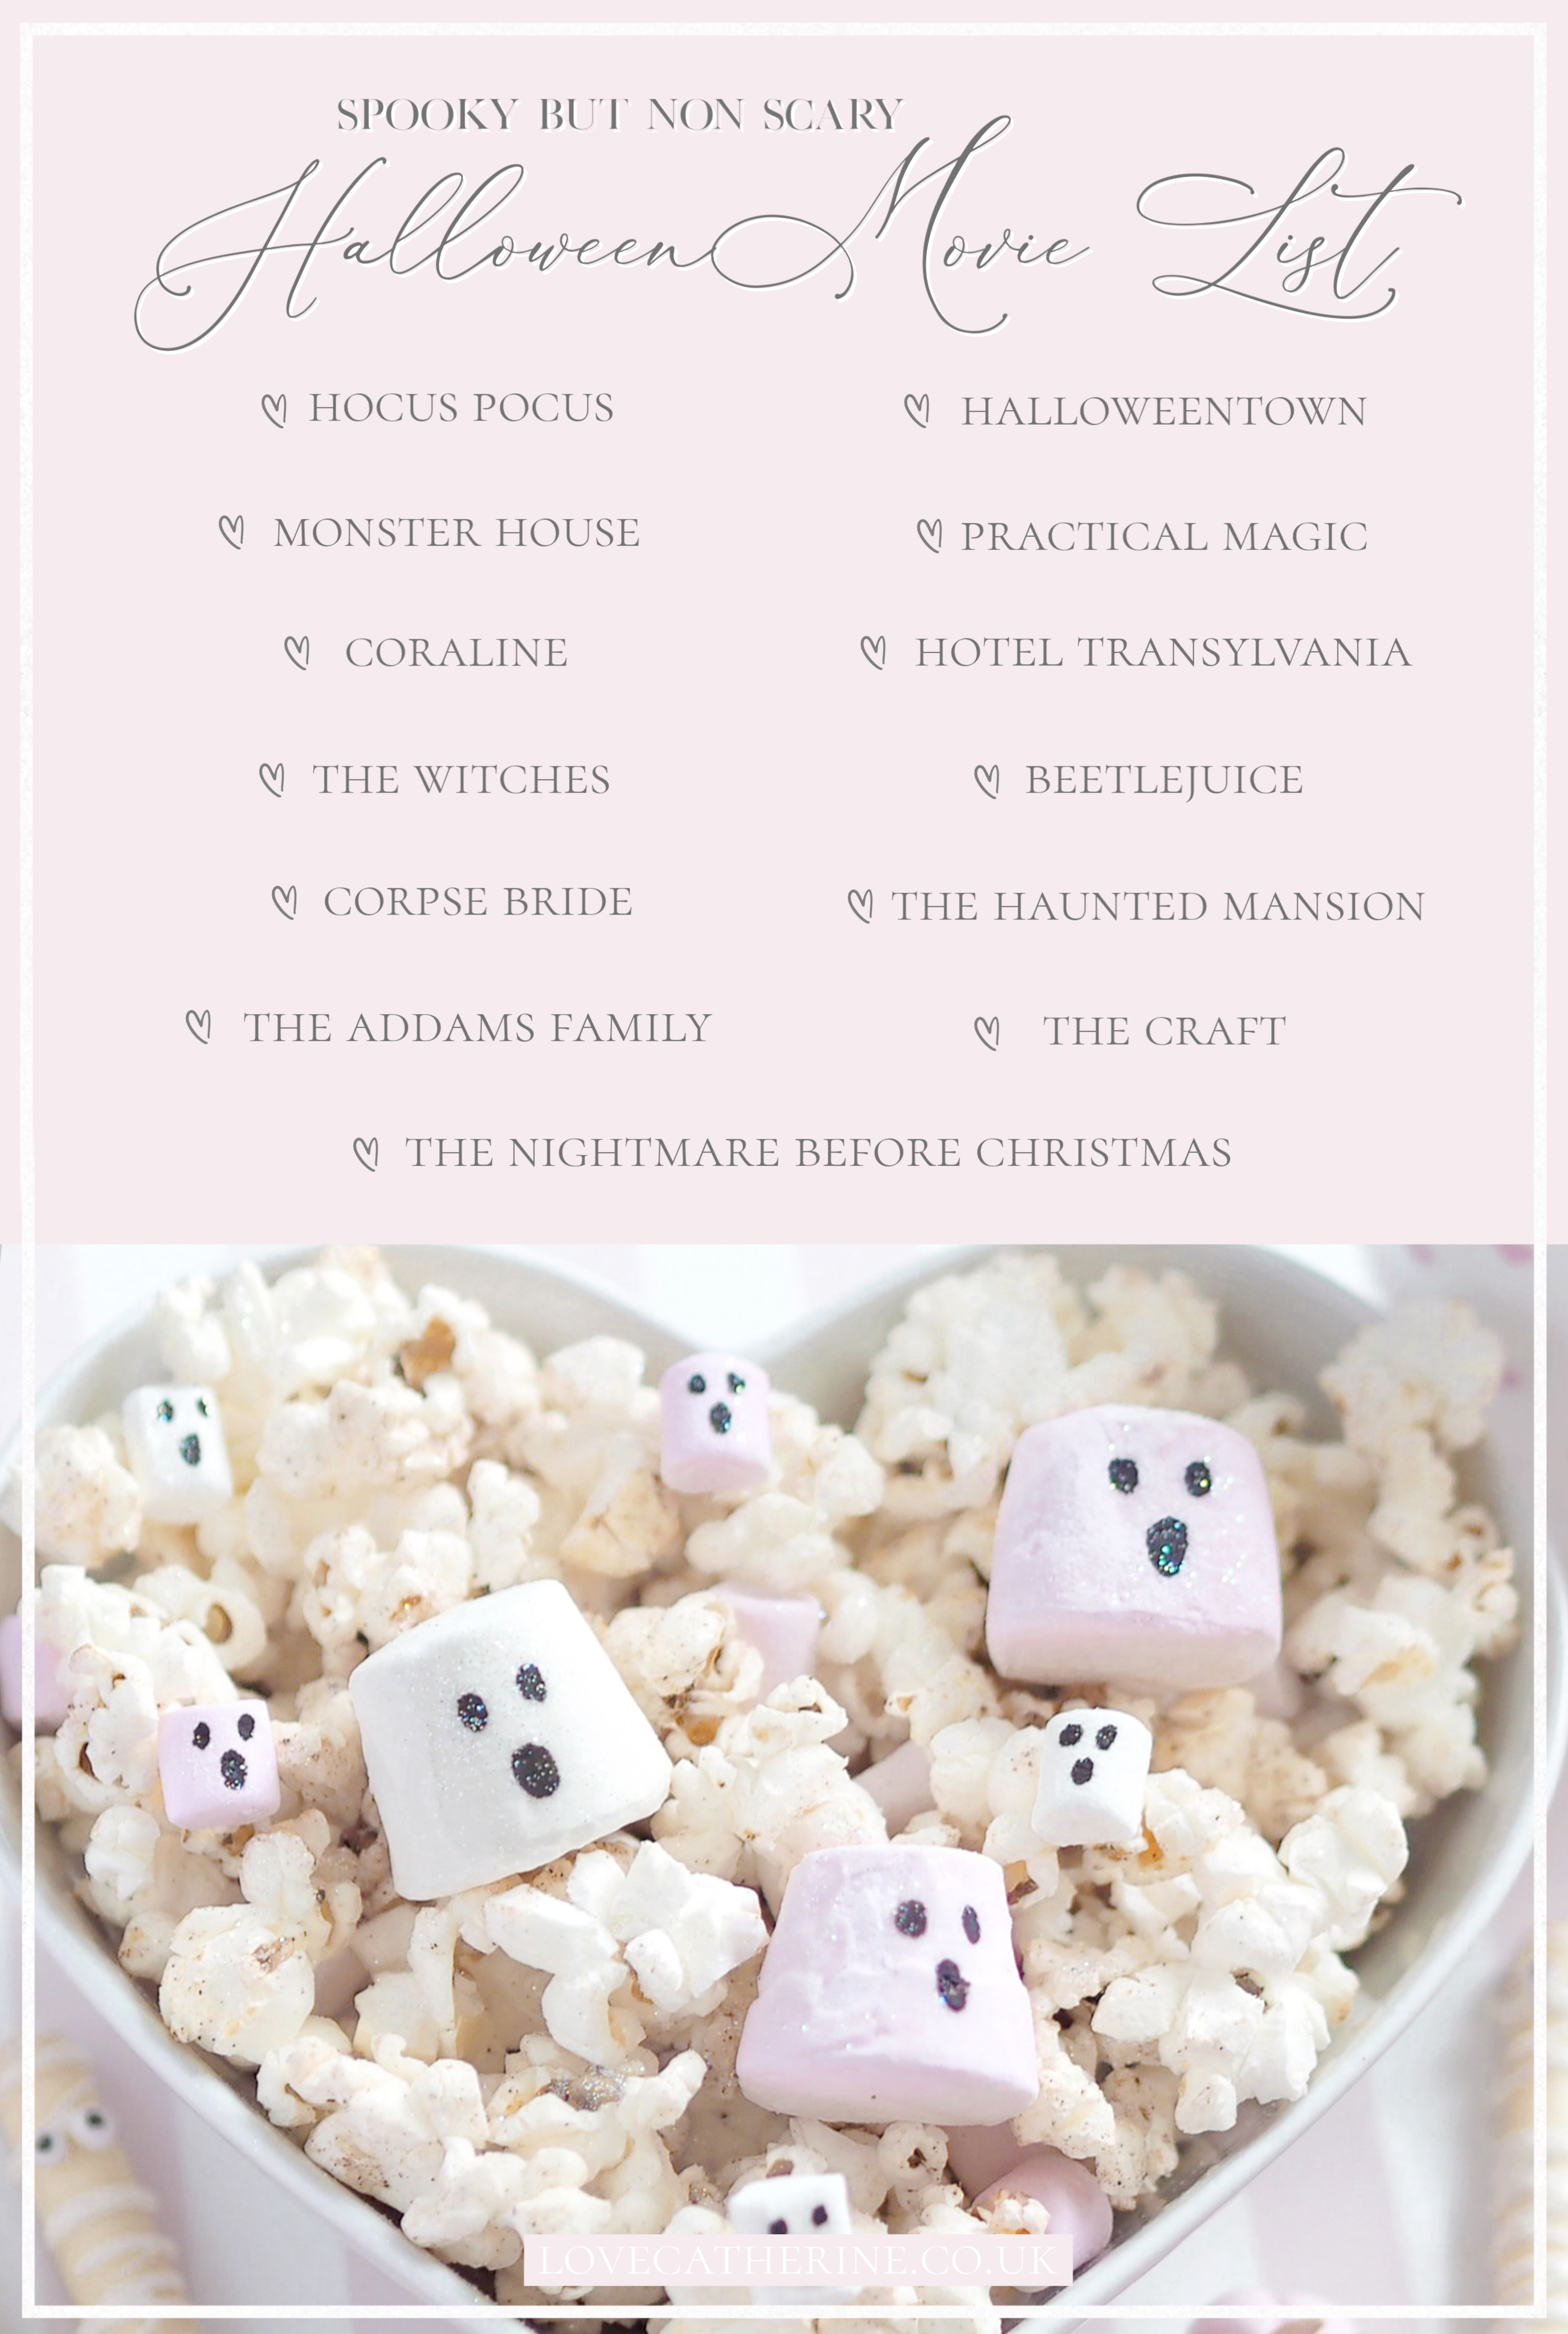 Spooky But Non Scary Halloween Movie List   A Girly Halloween Movie Night With 3 Easy Treats